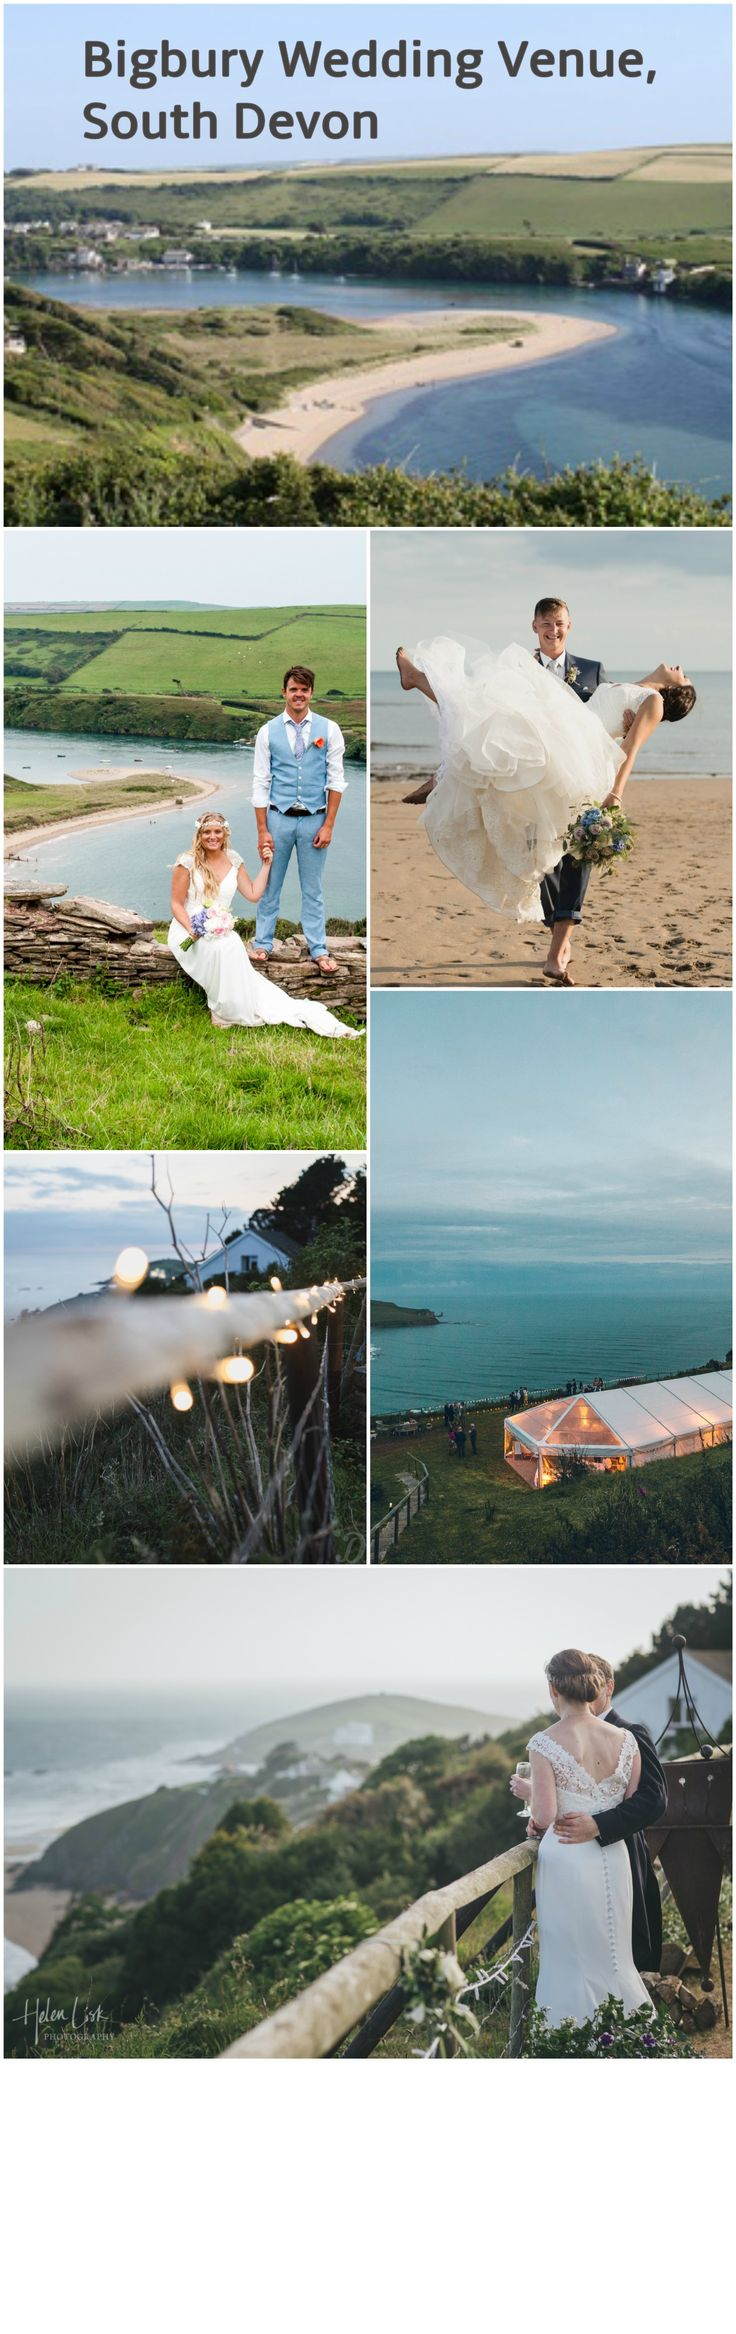 Bigbury Wedding Venue, Devon is perches on a specially levelled site overlooking the spectacular Bantham beach and Avon Esturary. A perfect wedding venue with an AWESOME view.